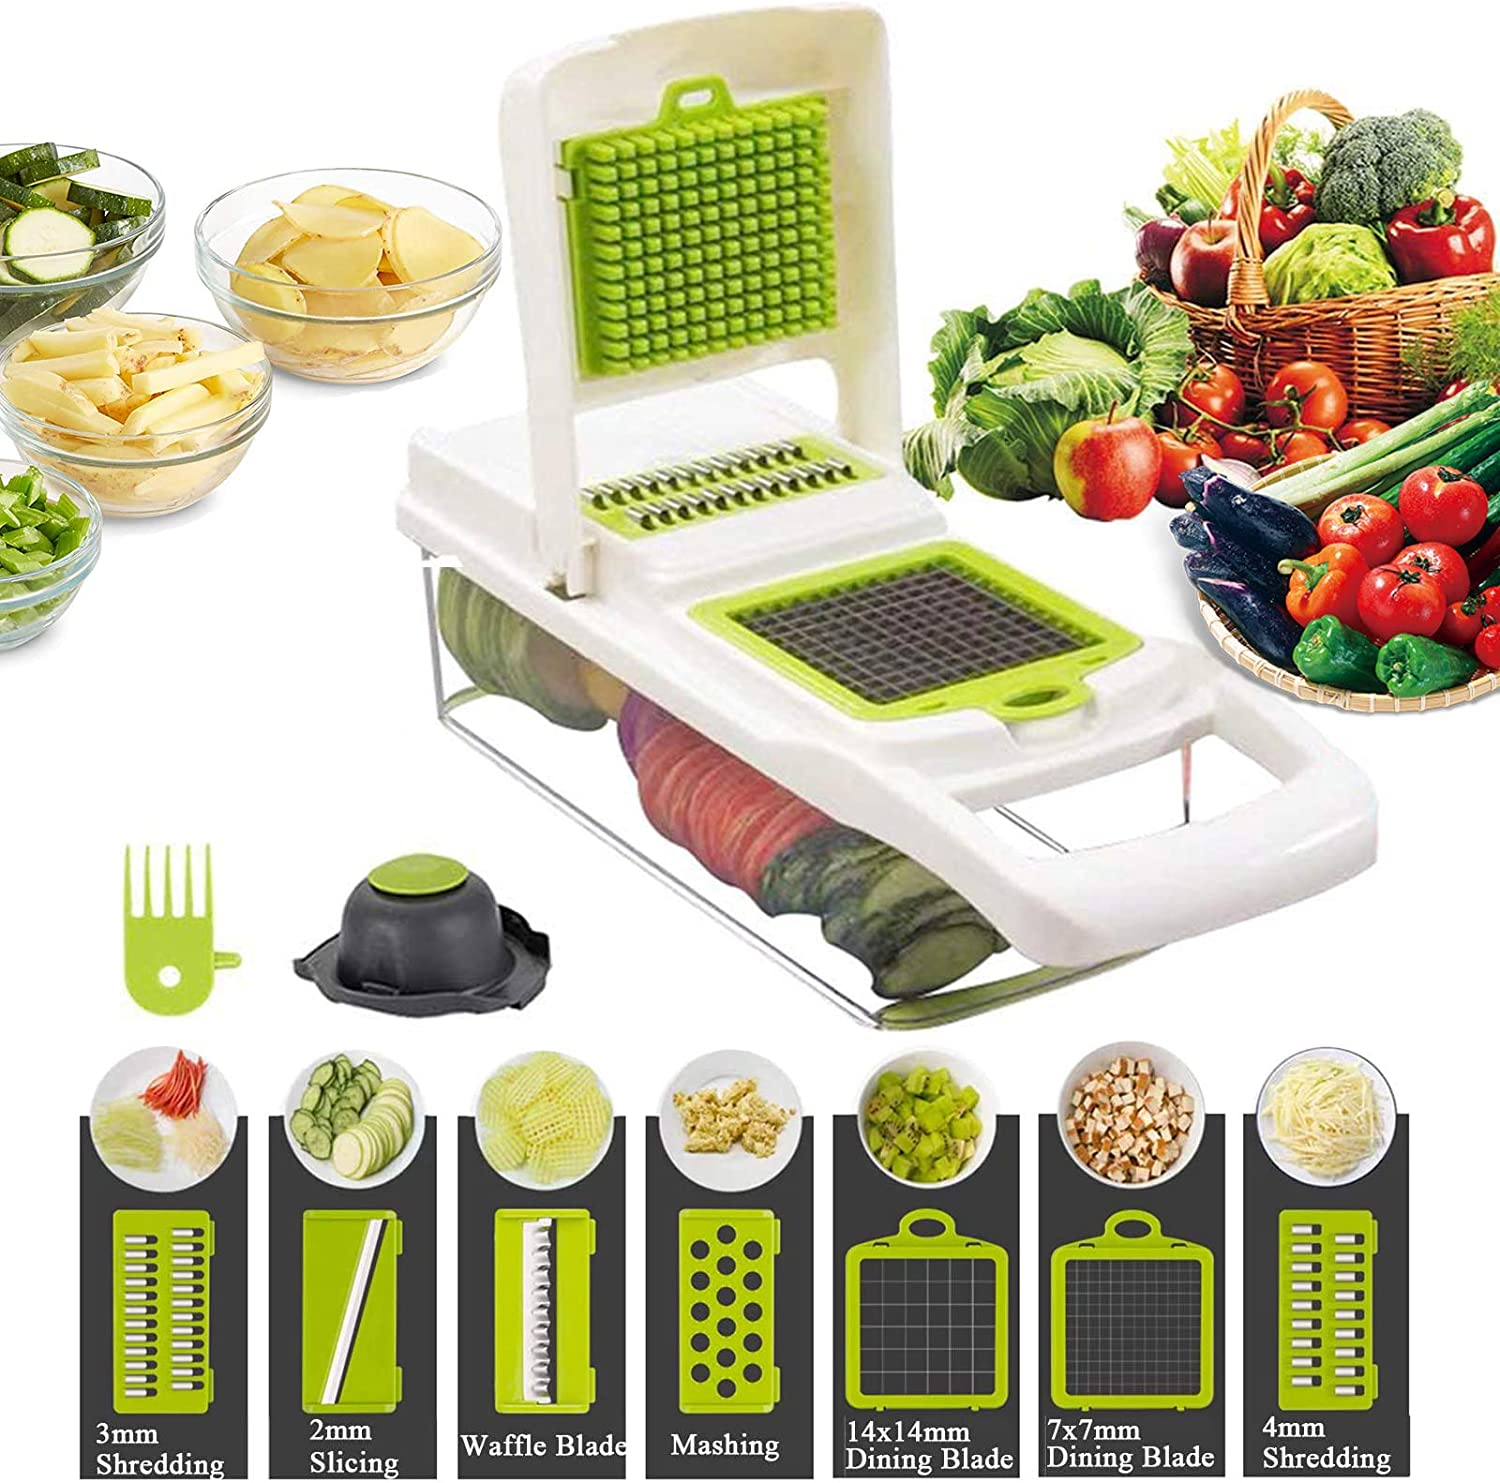 Vegetable Shredder, 12-In-1, The Third Generation Food Shredding (Slicing) Machine for Cutting Vegetables, Cheese, Fruits, Celery, Potatoes, Carrots, Fruit Salads (White)